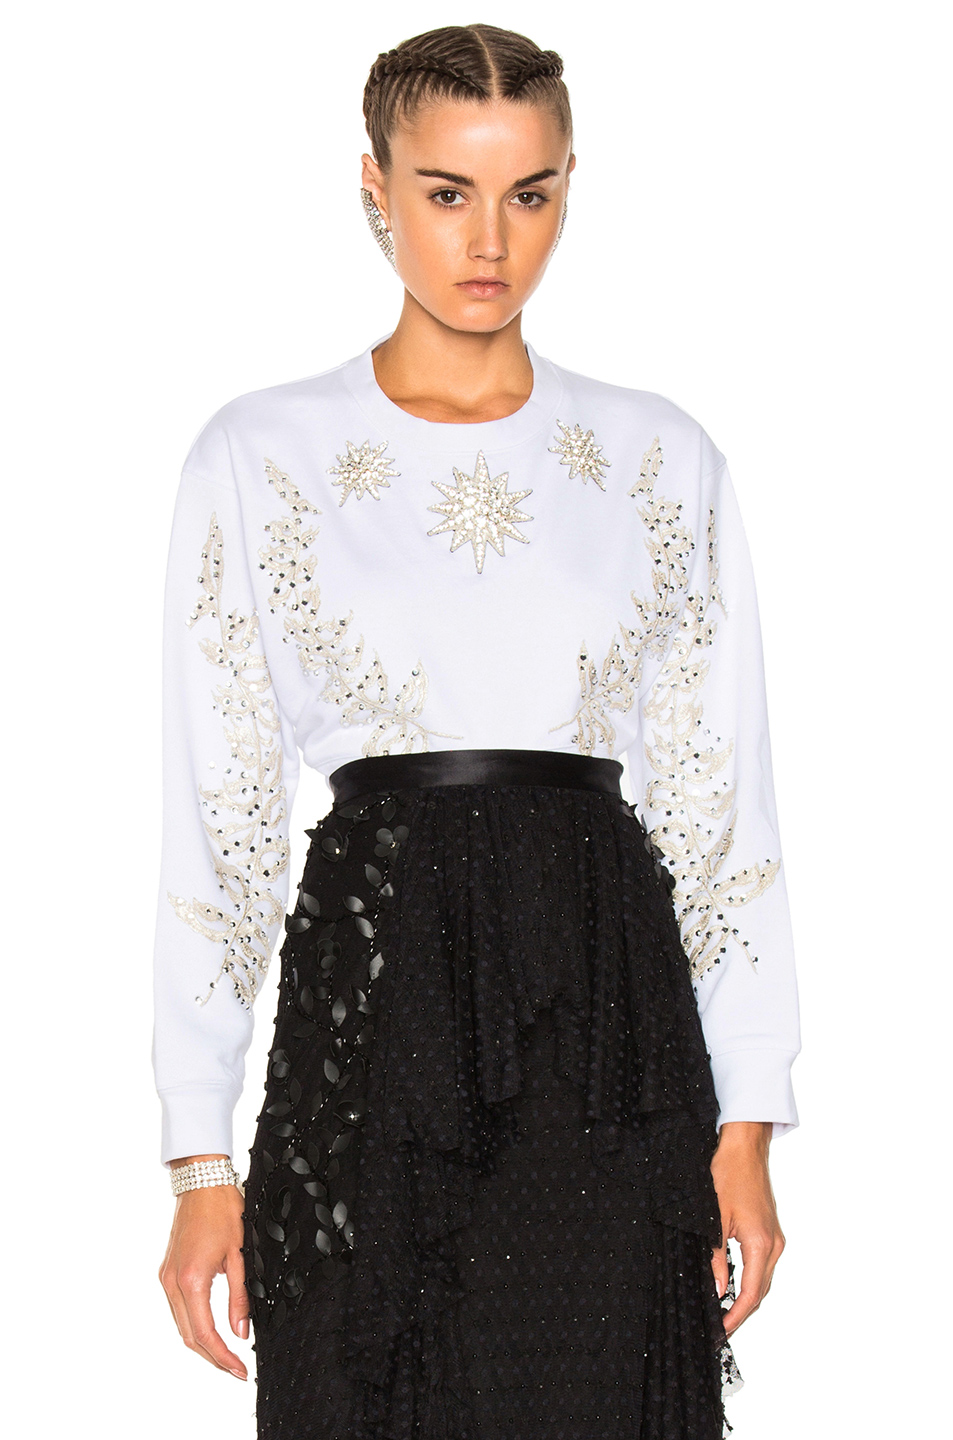 Francesco Scognamiglio Embellished Crew Neck Sweater in White